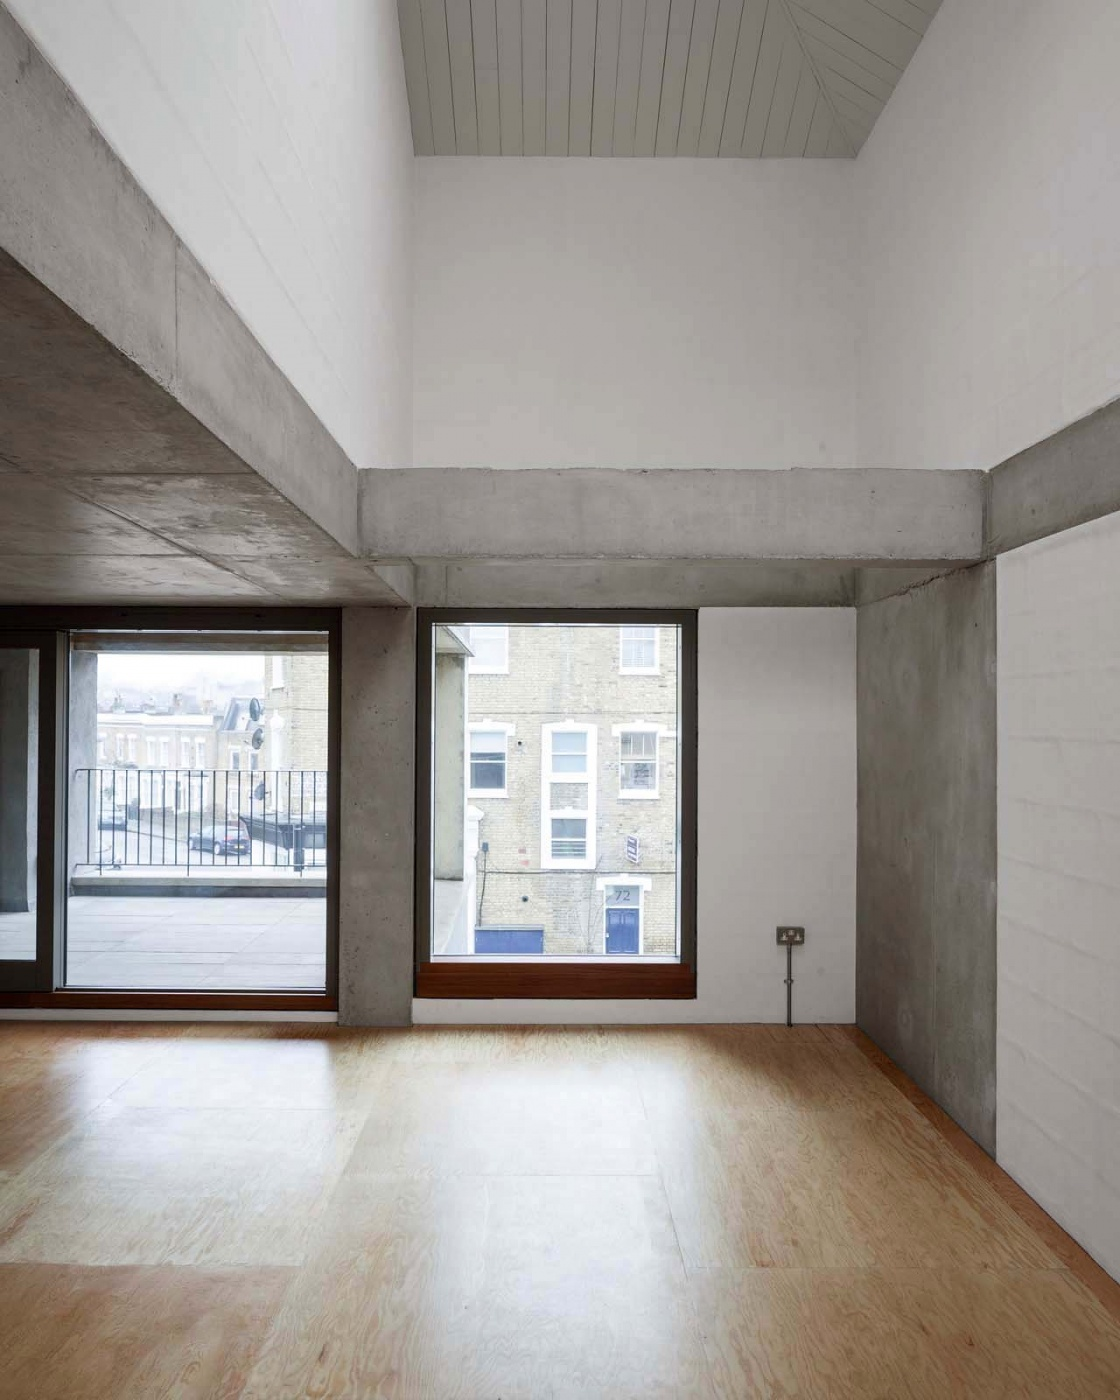 Four floors are bound together by two concrete columns that rise through the building and help to define the primary rectangular living space from which